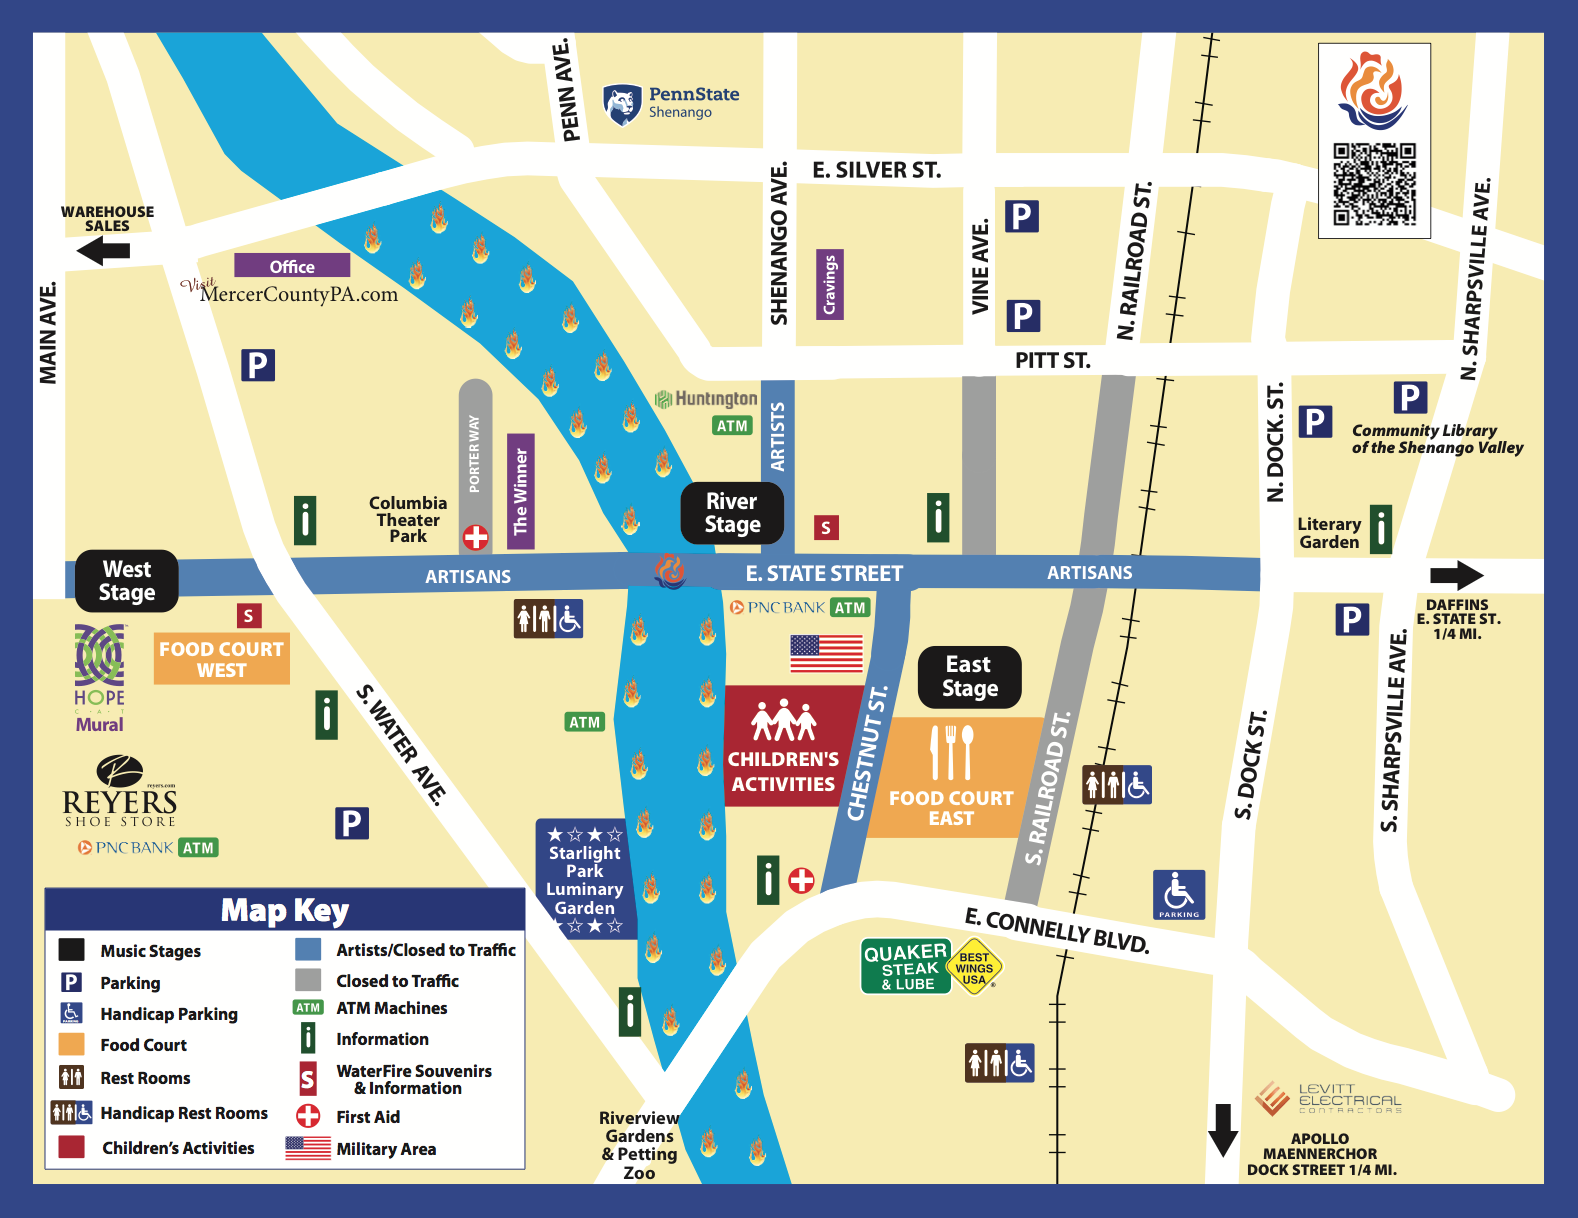 WaterFire, Sharon PA » 2017 Walking Map on i-290 map, tours on a map, quest map, transit map, biking map, tourist map, thinking map, walk map, sports map, bike map, shopping map, amtrak train map, fall color peak map, you are here map, bridge map, bus map, tv tower locations map, train ride map, beach map, port washington long island map,